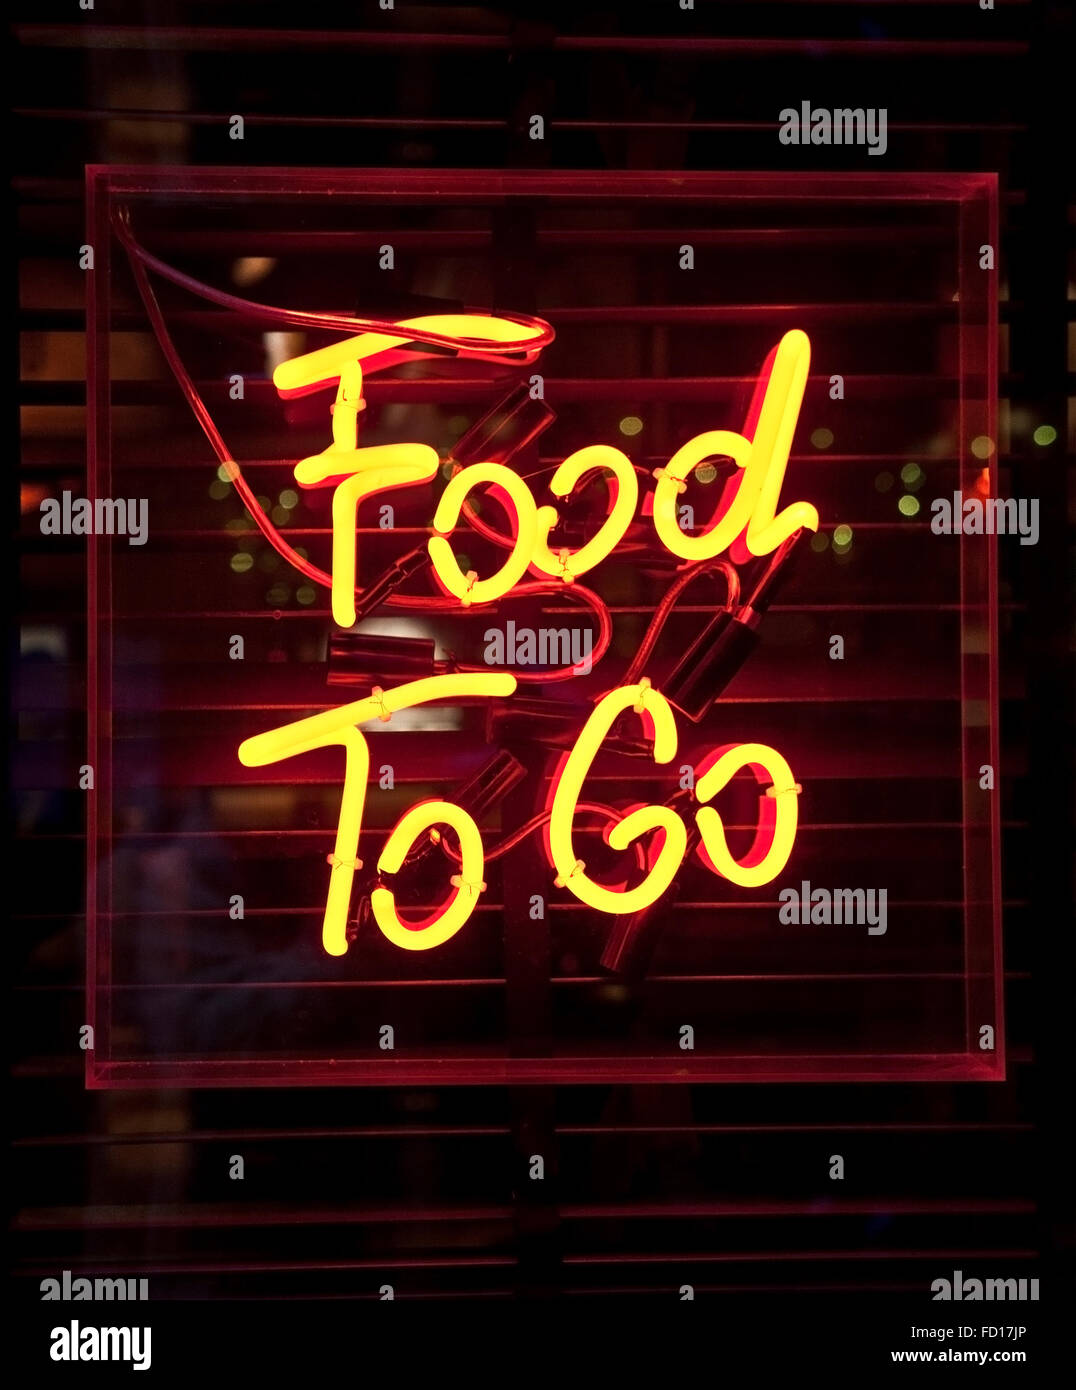 Food To Go neon sign - Stock Image